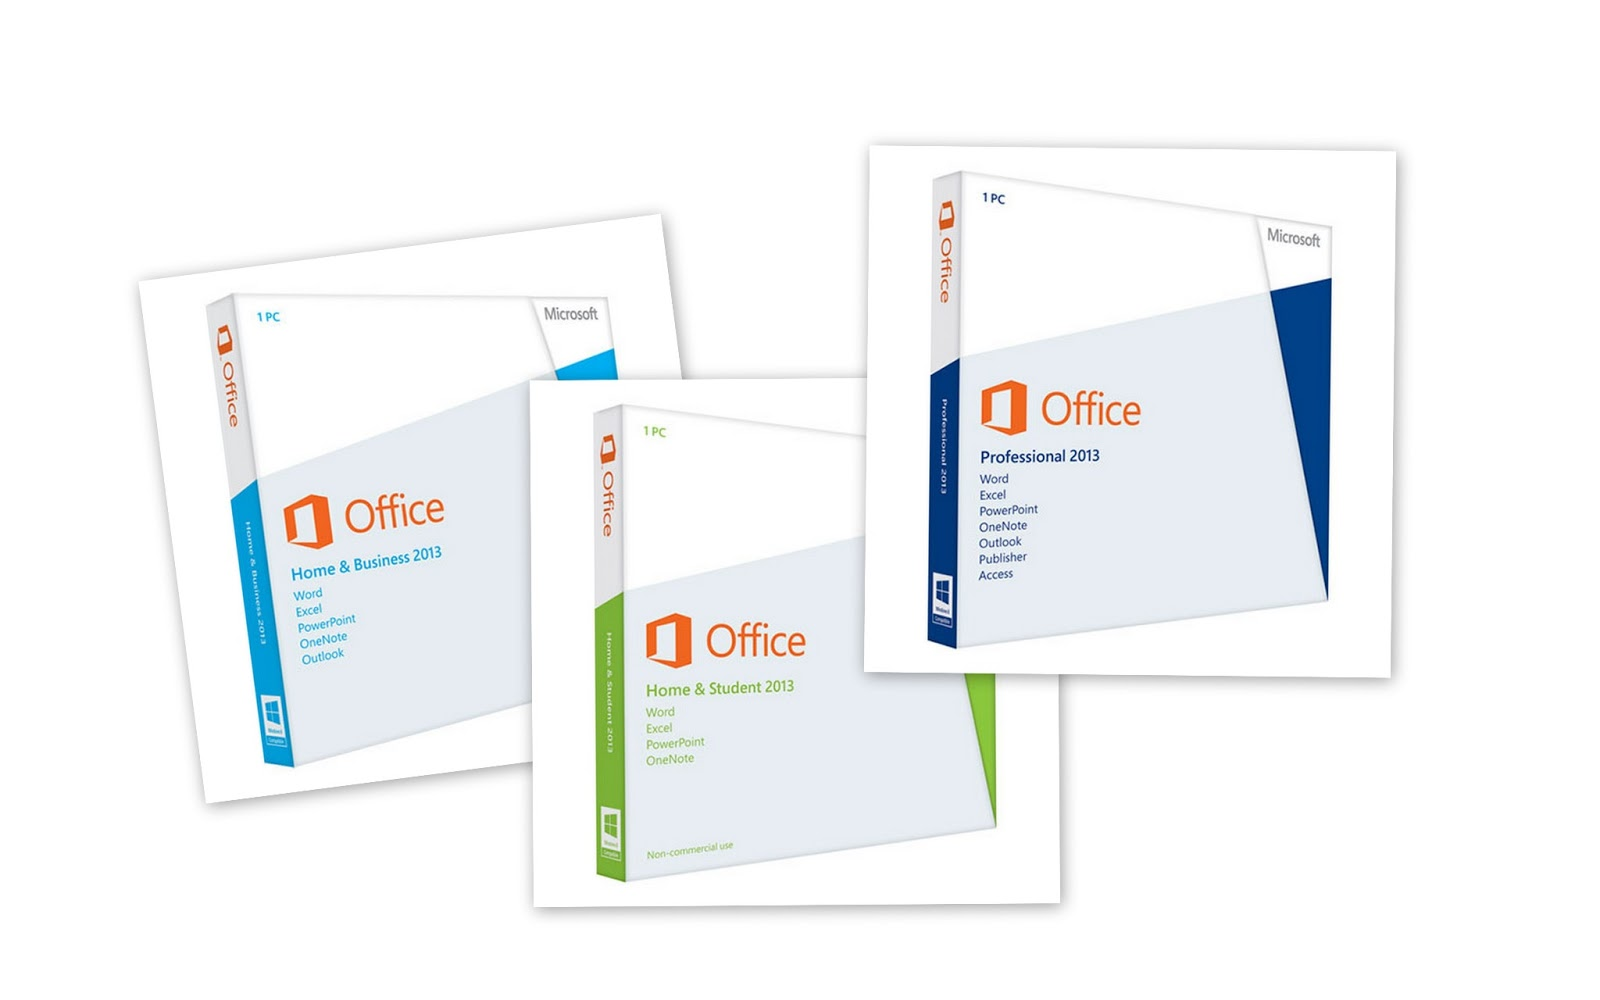 Techie Mum: Microsoft Office 2013 Review - Part 1